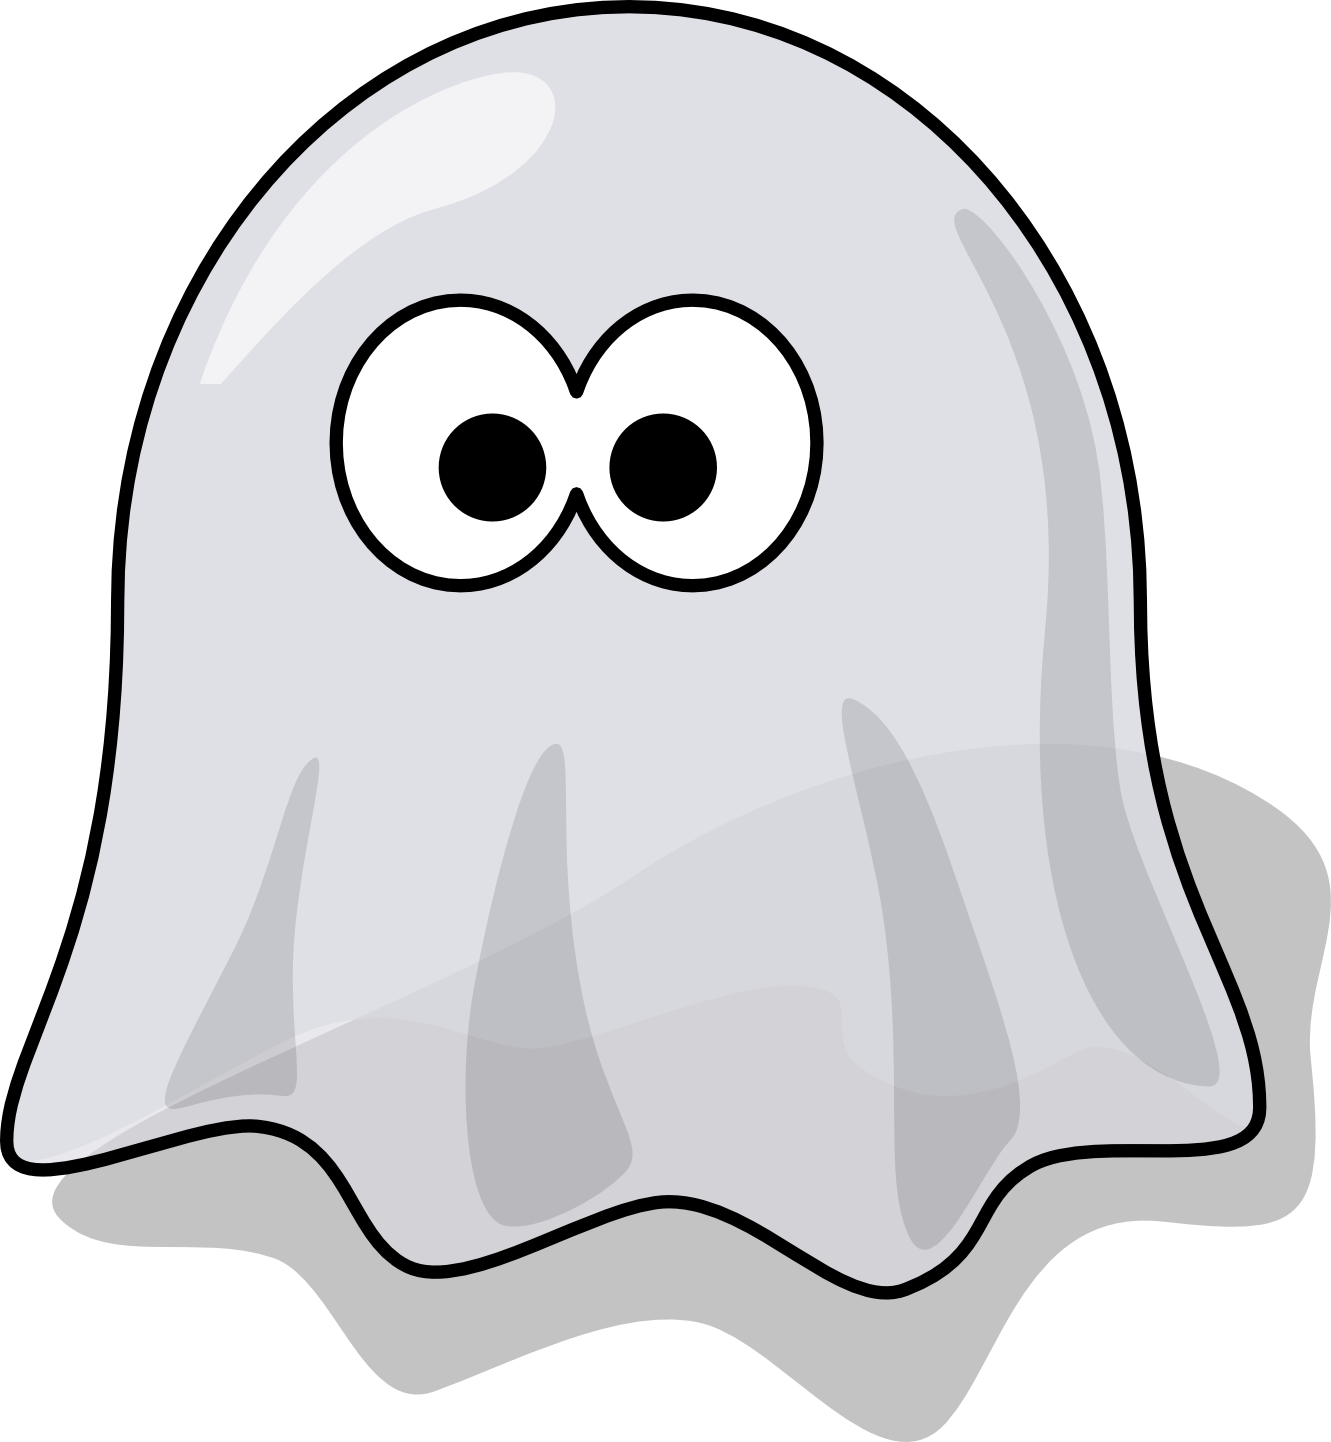 Ghost outline clipart jpg freeuse Ghost Outline Clip Art | Clipart Panda - Free Clipart Images jpg freeuse